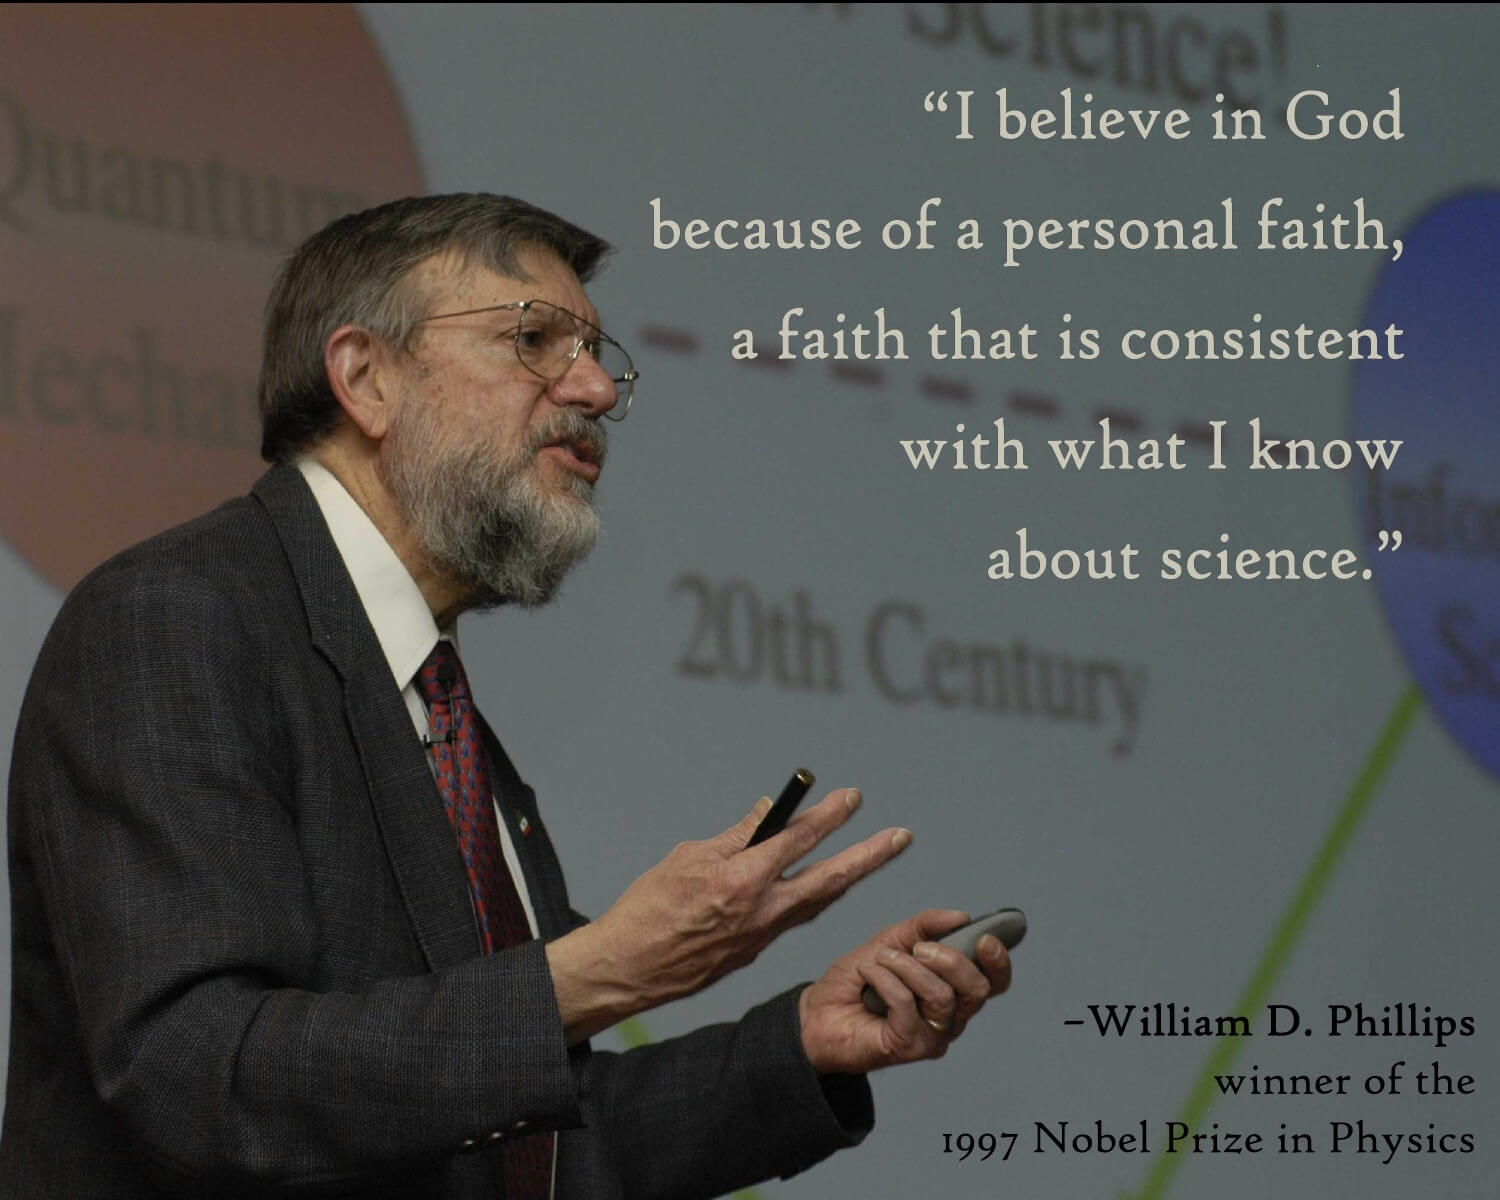 Does science make belief in God obsolete?